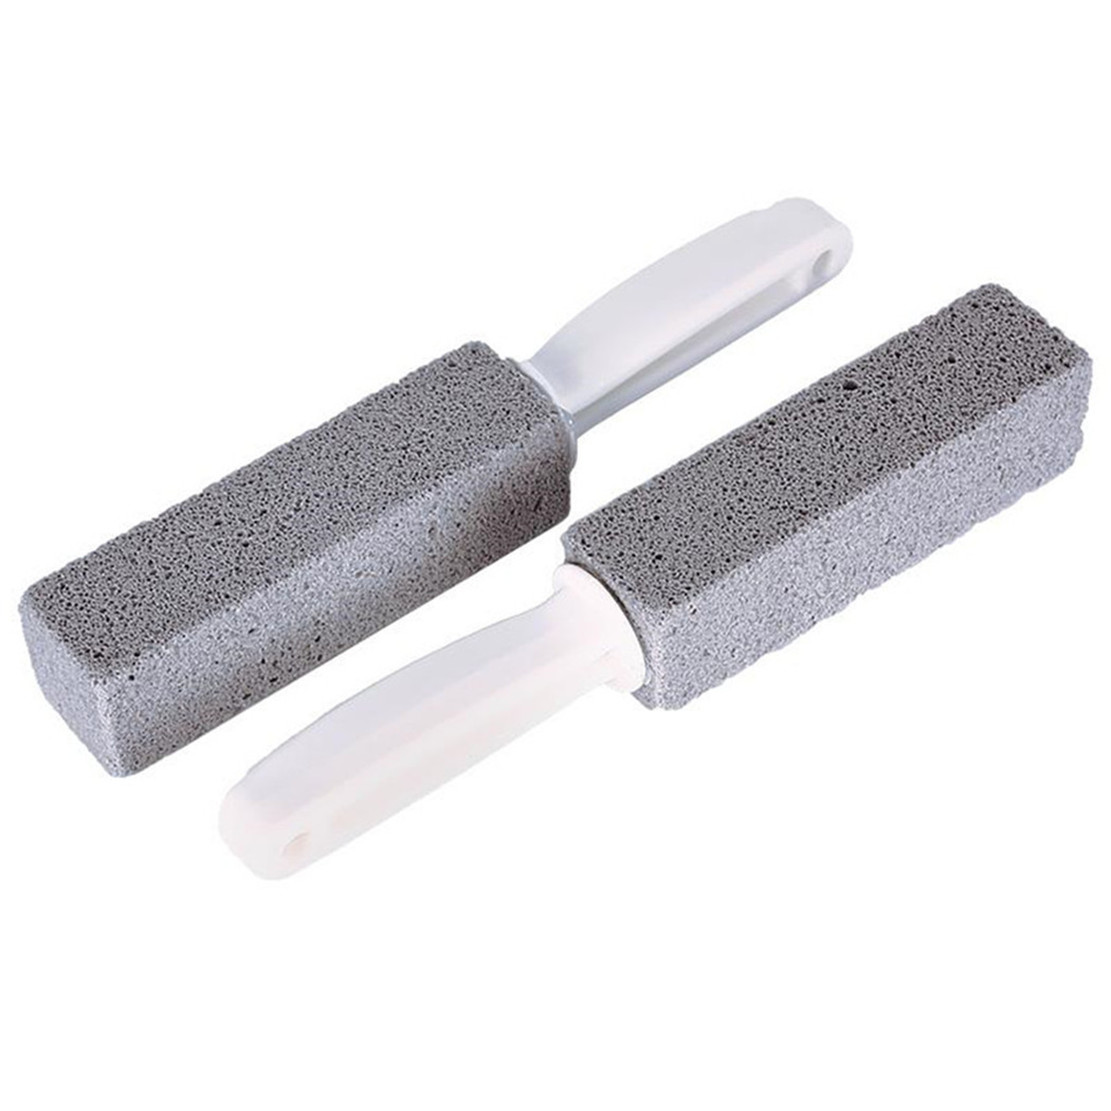 Household cleaner tools glass pumice stone for BBQ Grill cleaning stick